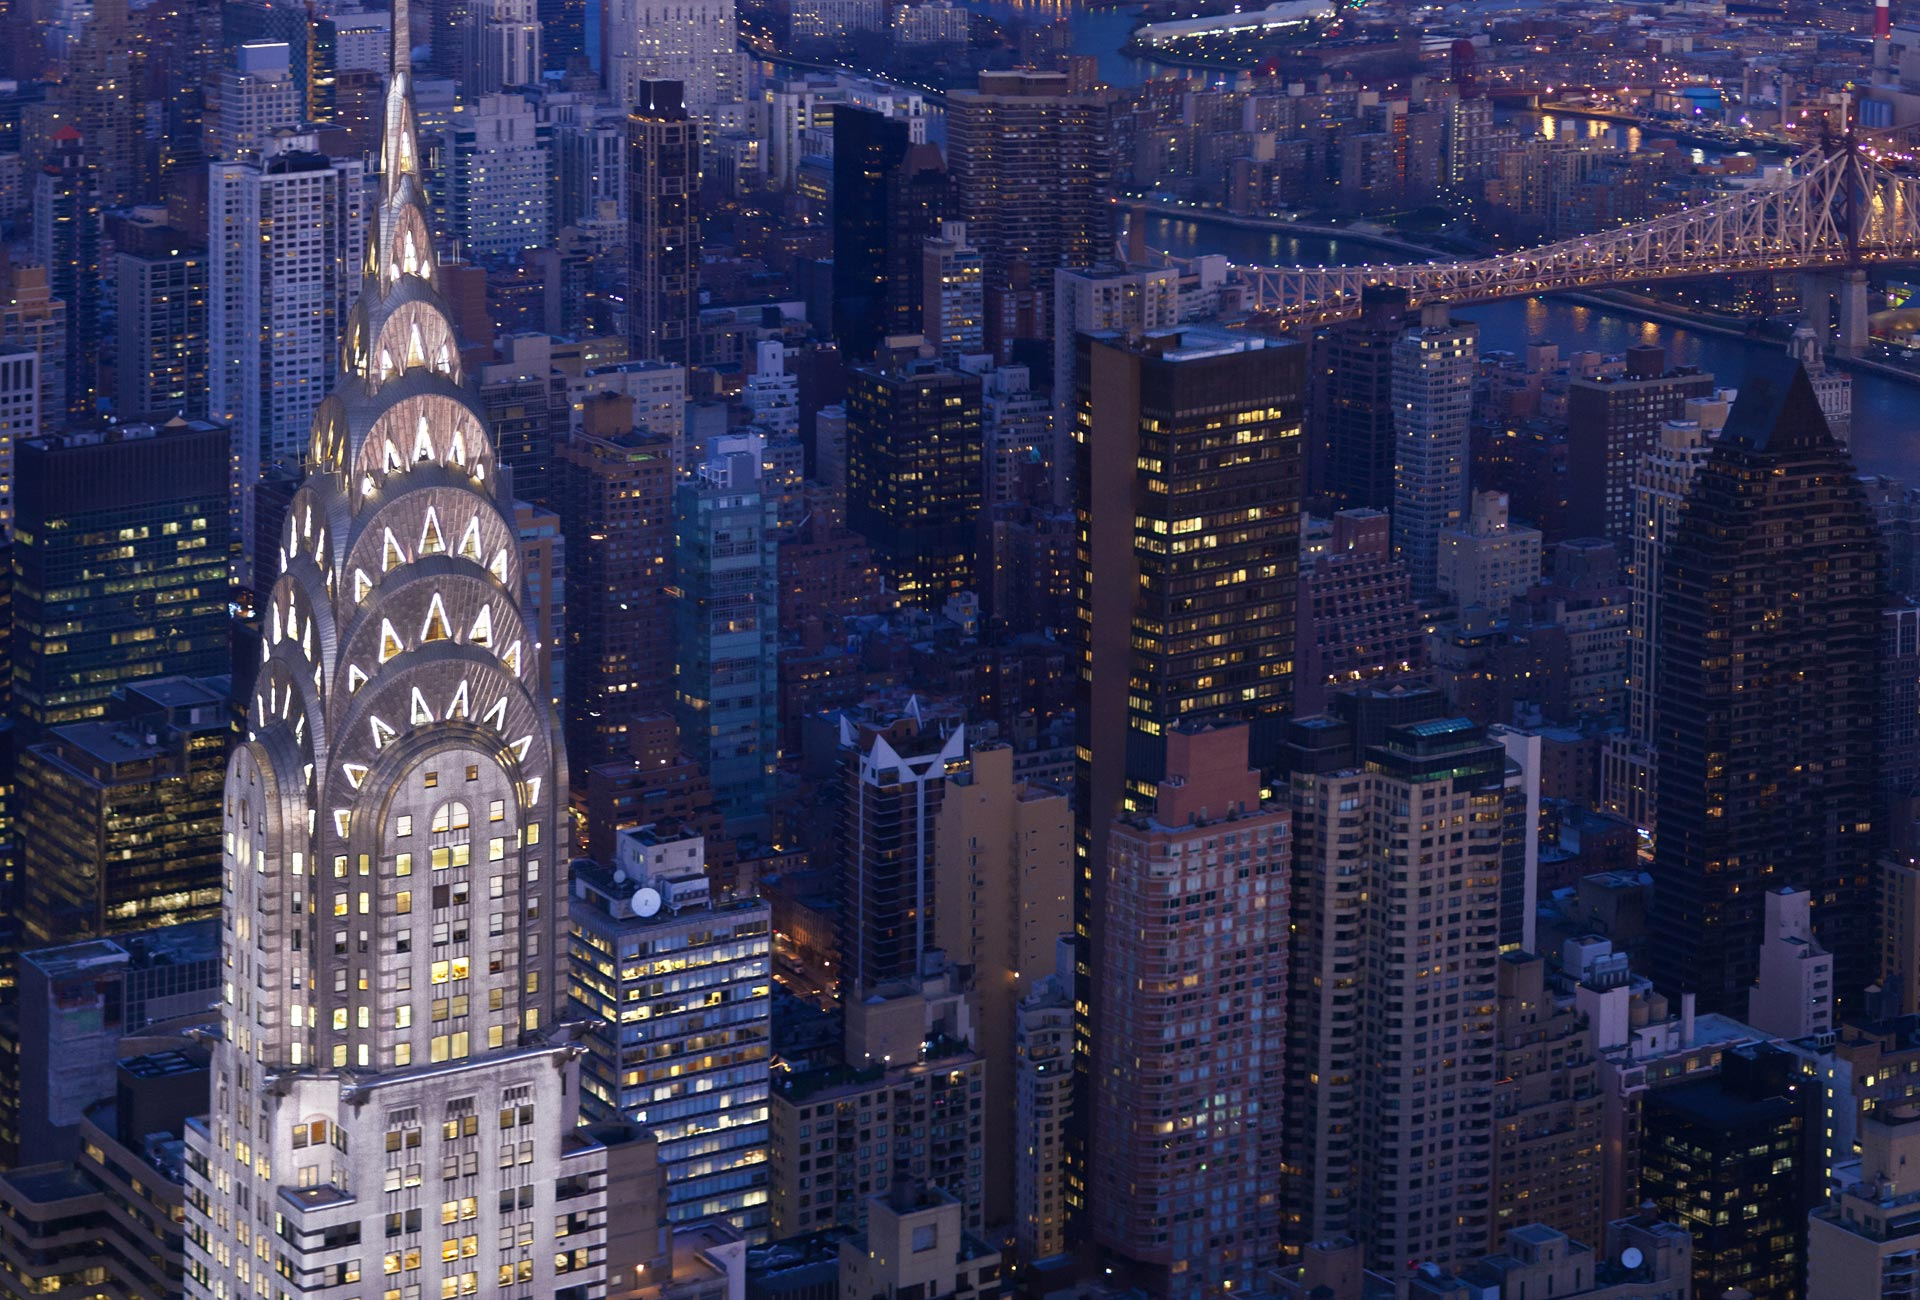 The Chrysler Building, New York - O ne of the most famous examples of Art Deco Architecture - Photo source:  tishmanspeyer.com